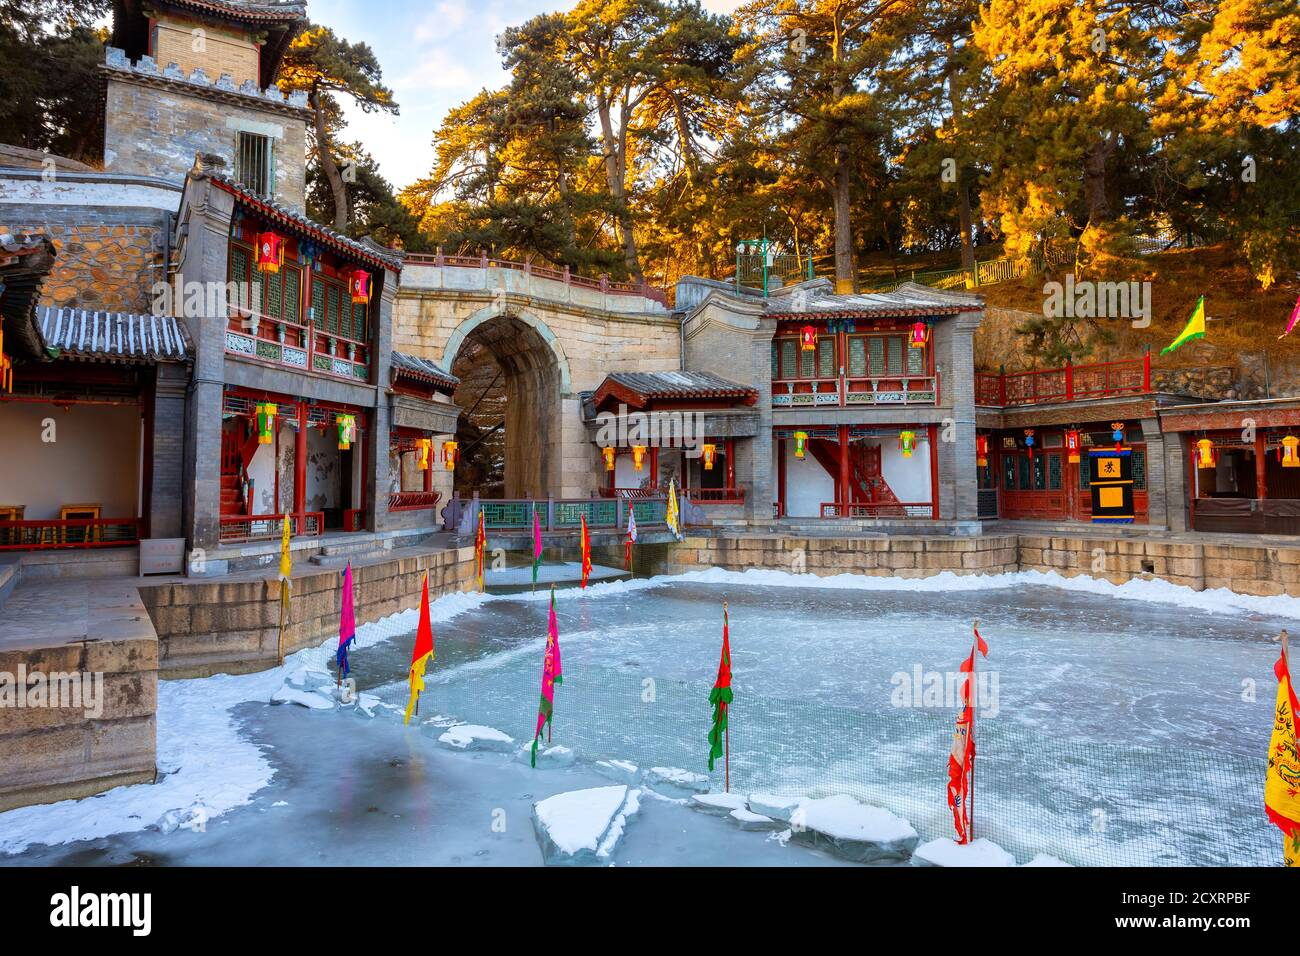 Beijing, China - Jan 13 2020: Suzhuo Market Street at the Beijing  Summer Palace, design imitates the ancient style of shops on the banks of rivers in Stock Photo